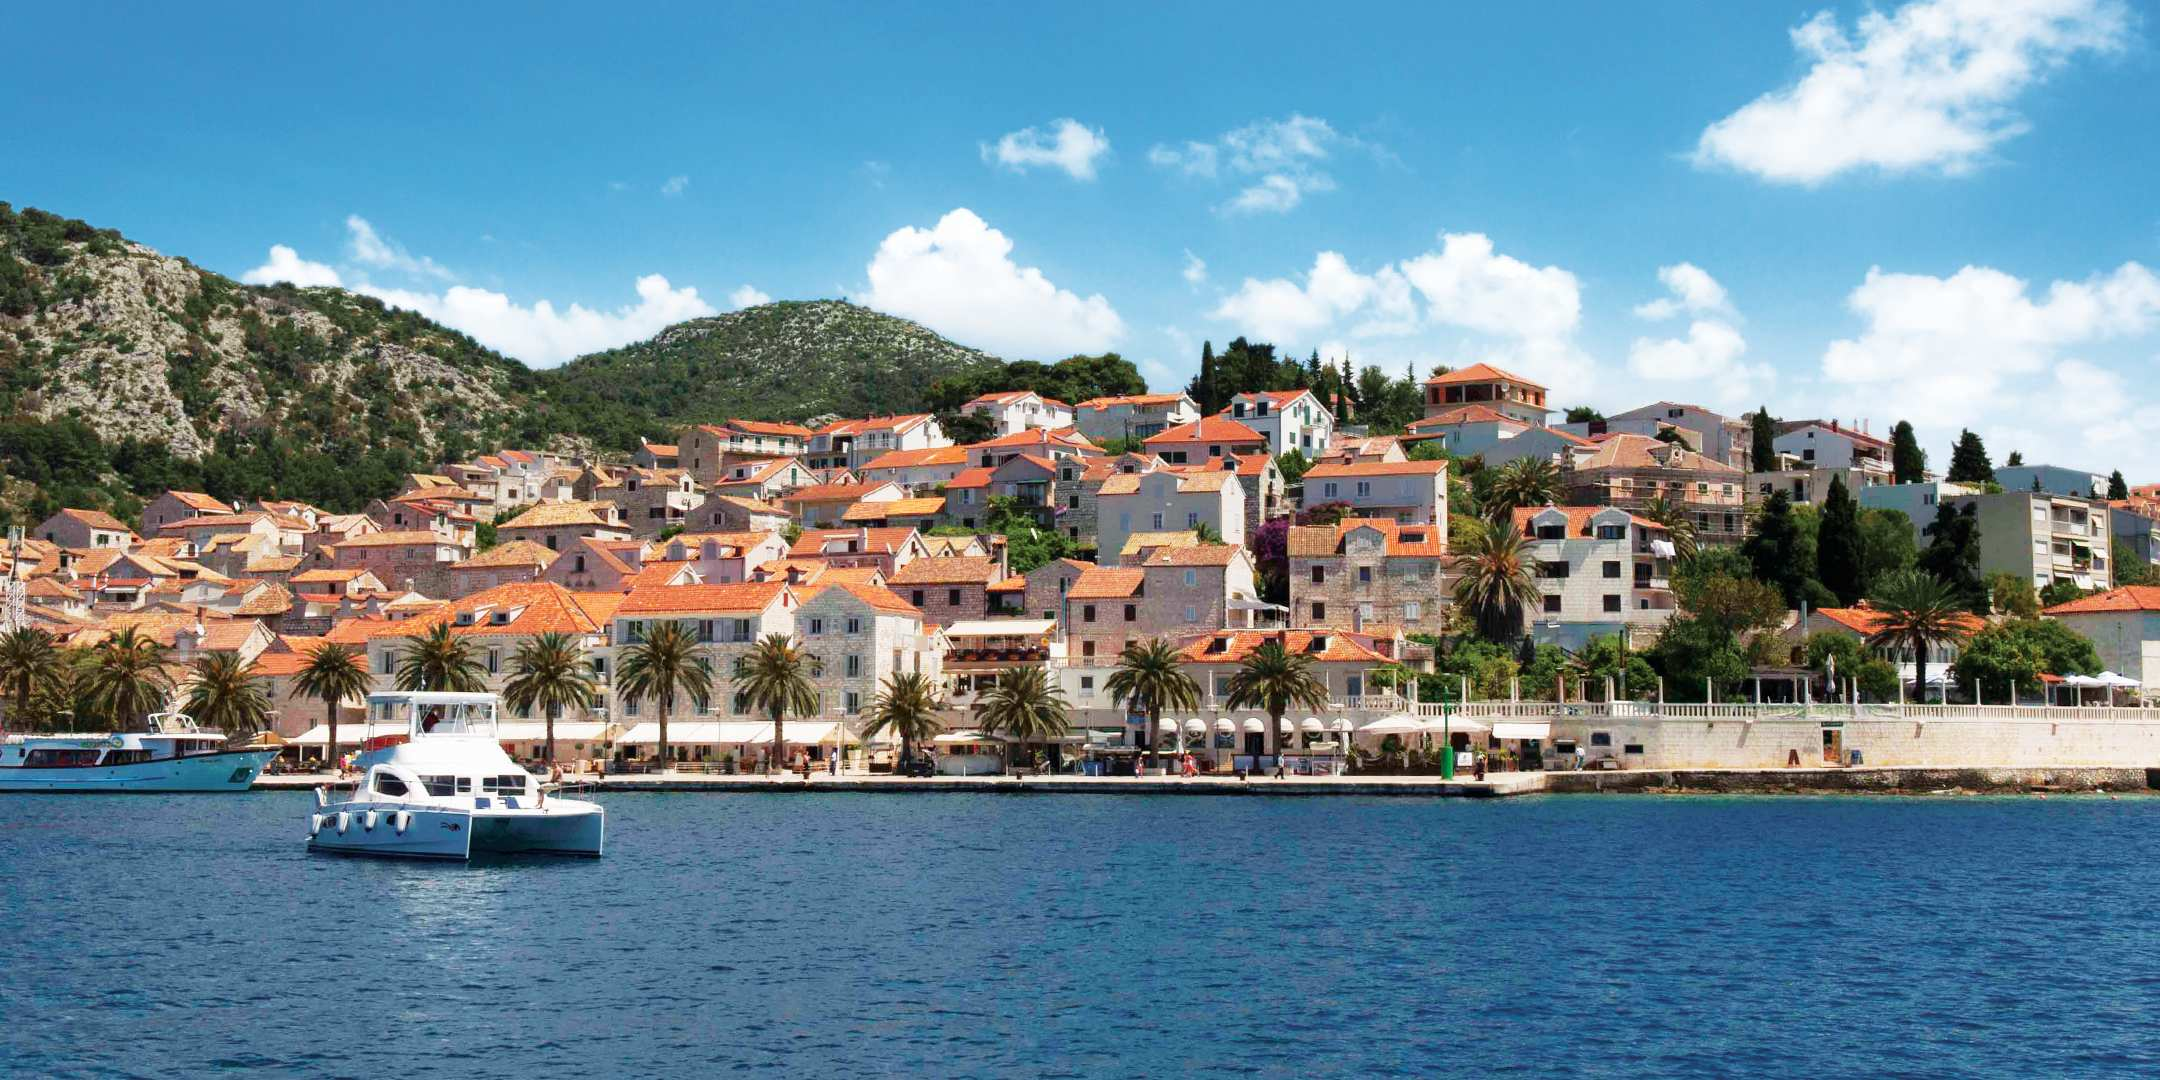 us_tm_1603_0318_blog-best-summer-vacation-spots_croatia.jpg